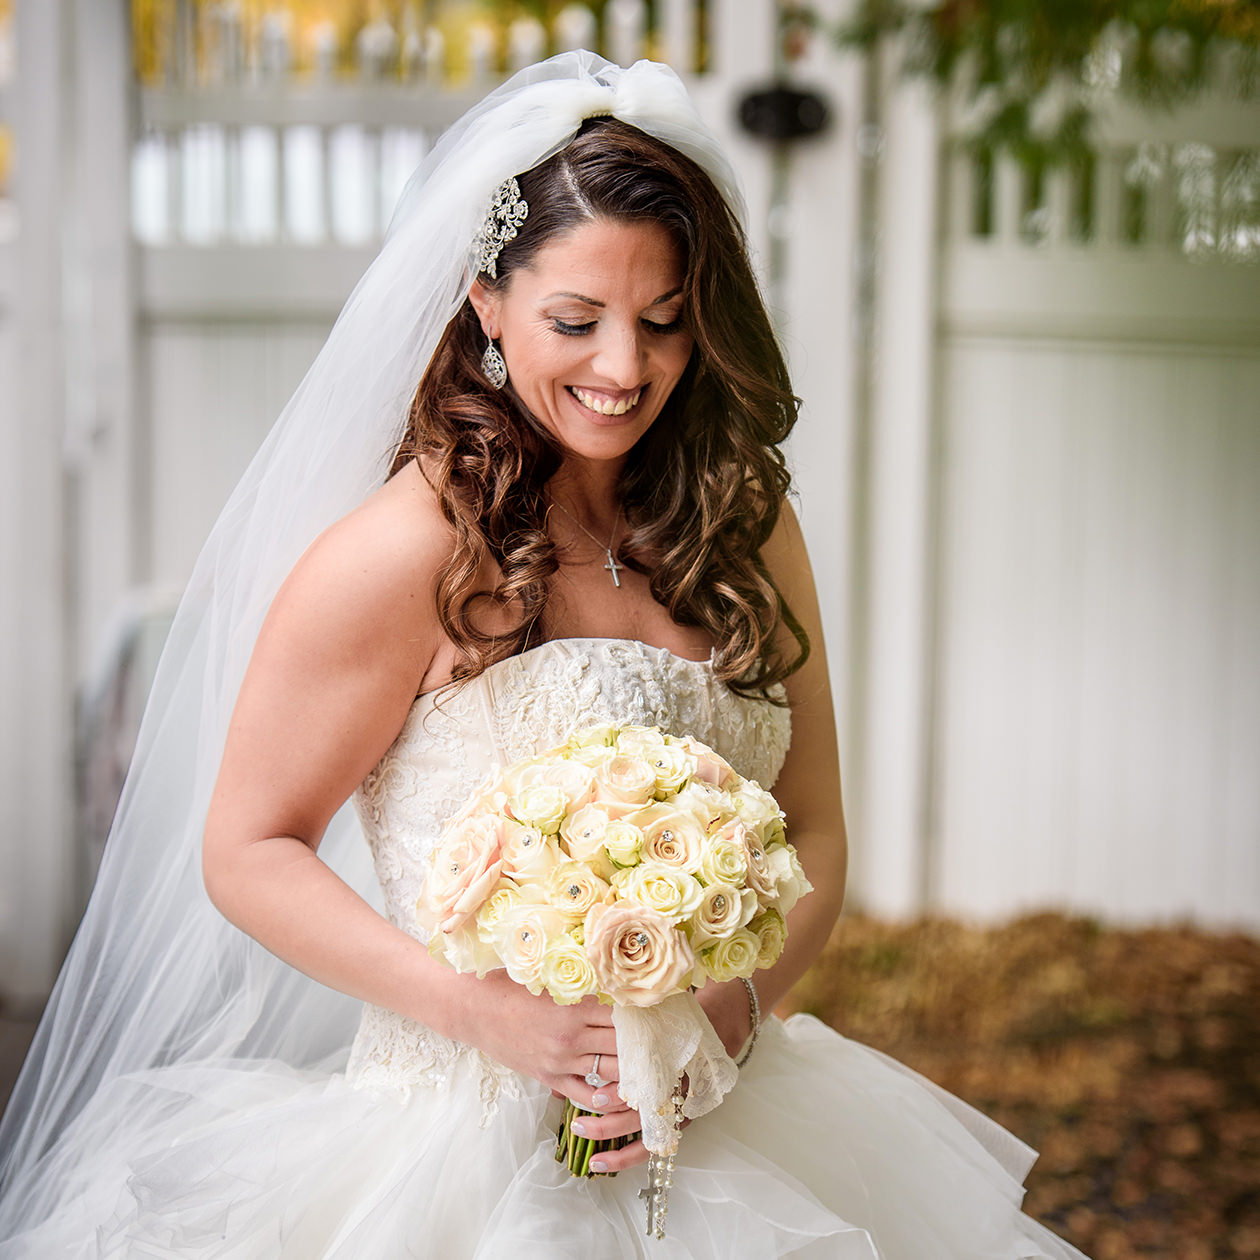 Bride looking down holding flowers